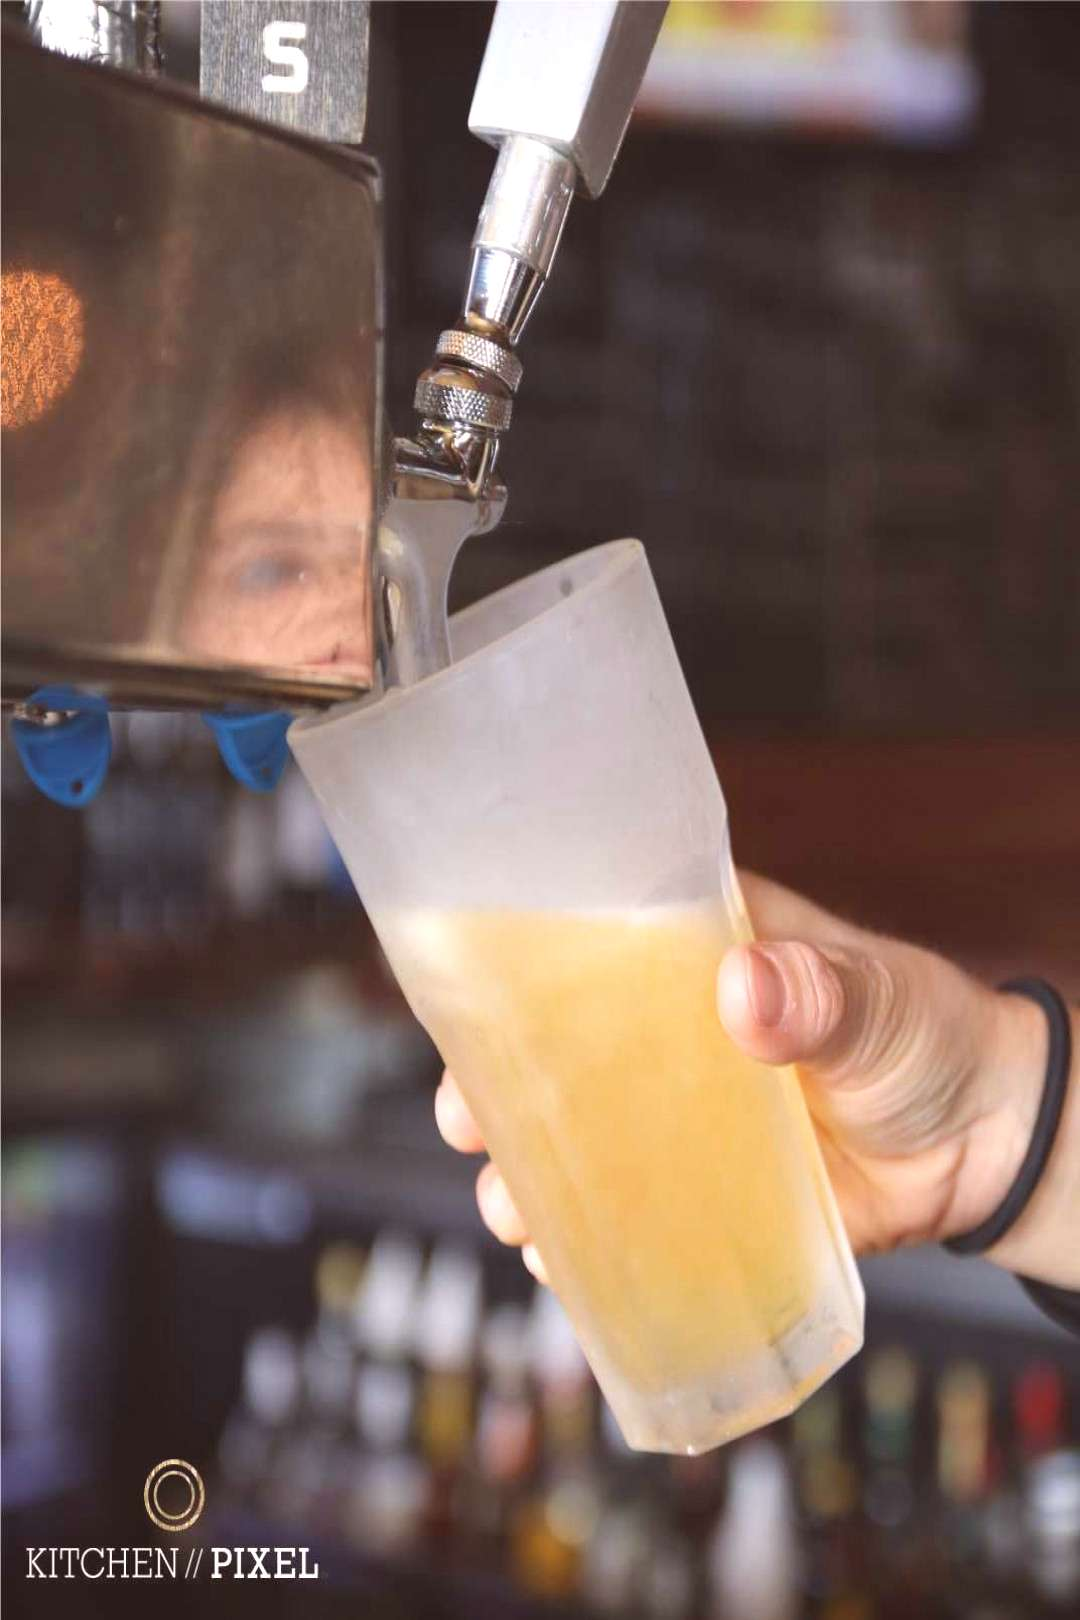 What's better than a cold beer in a frosty glass? Drinking it on National Beer Day!